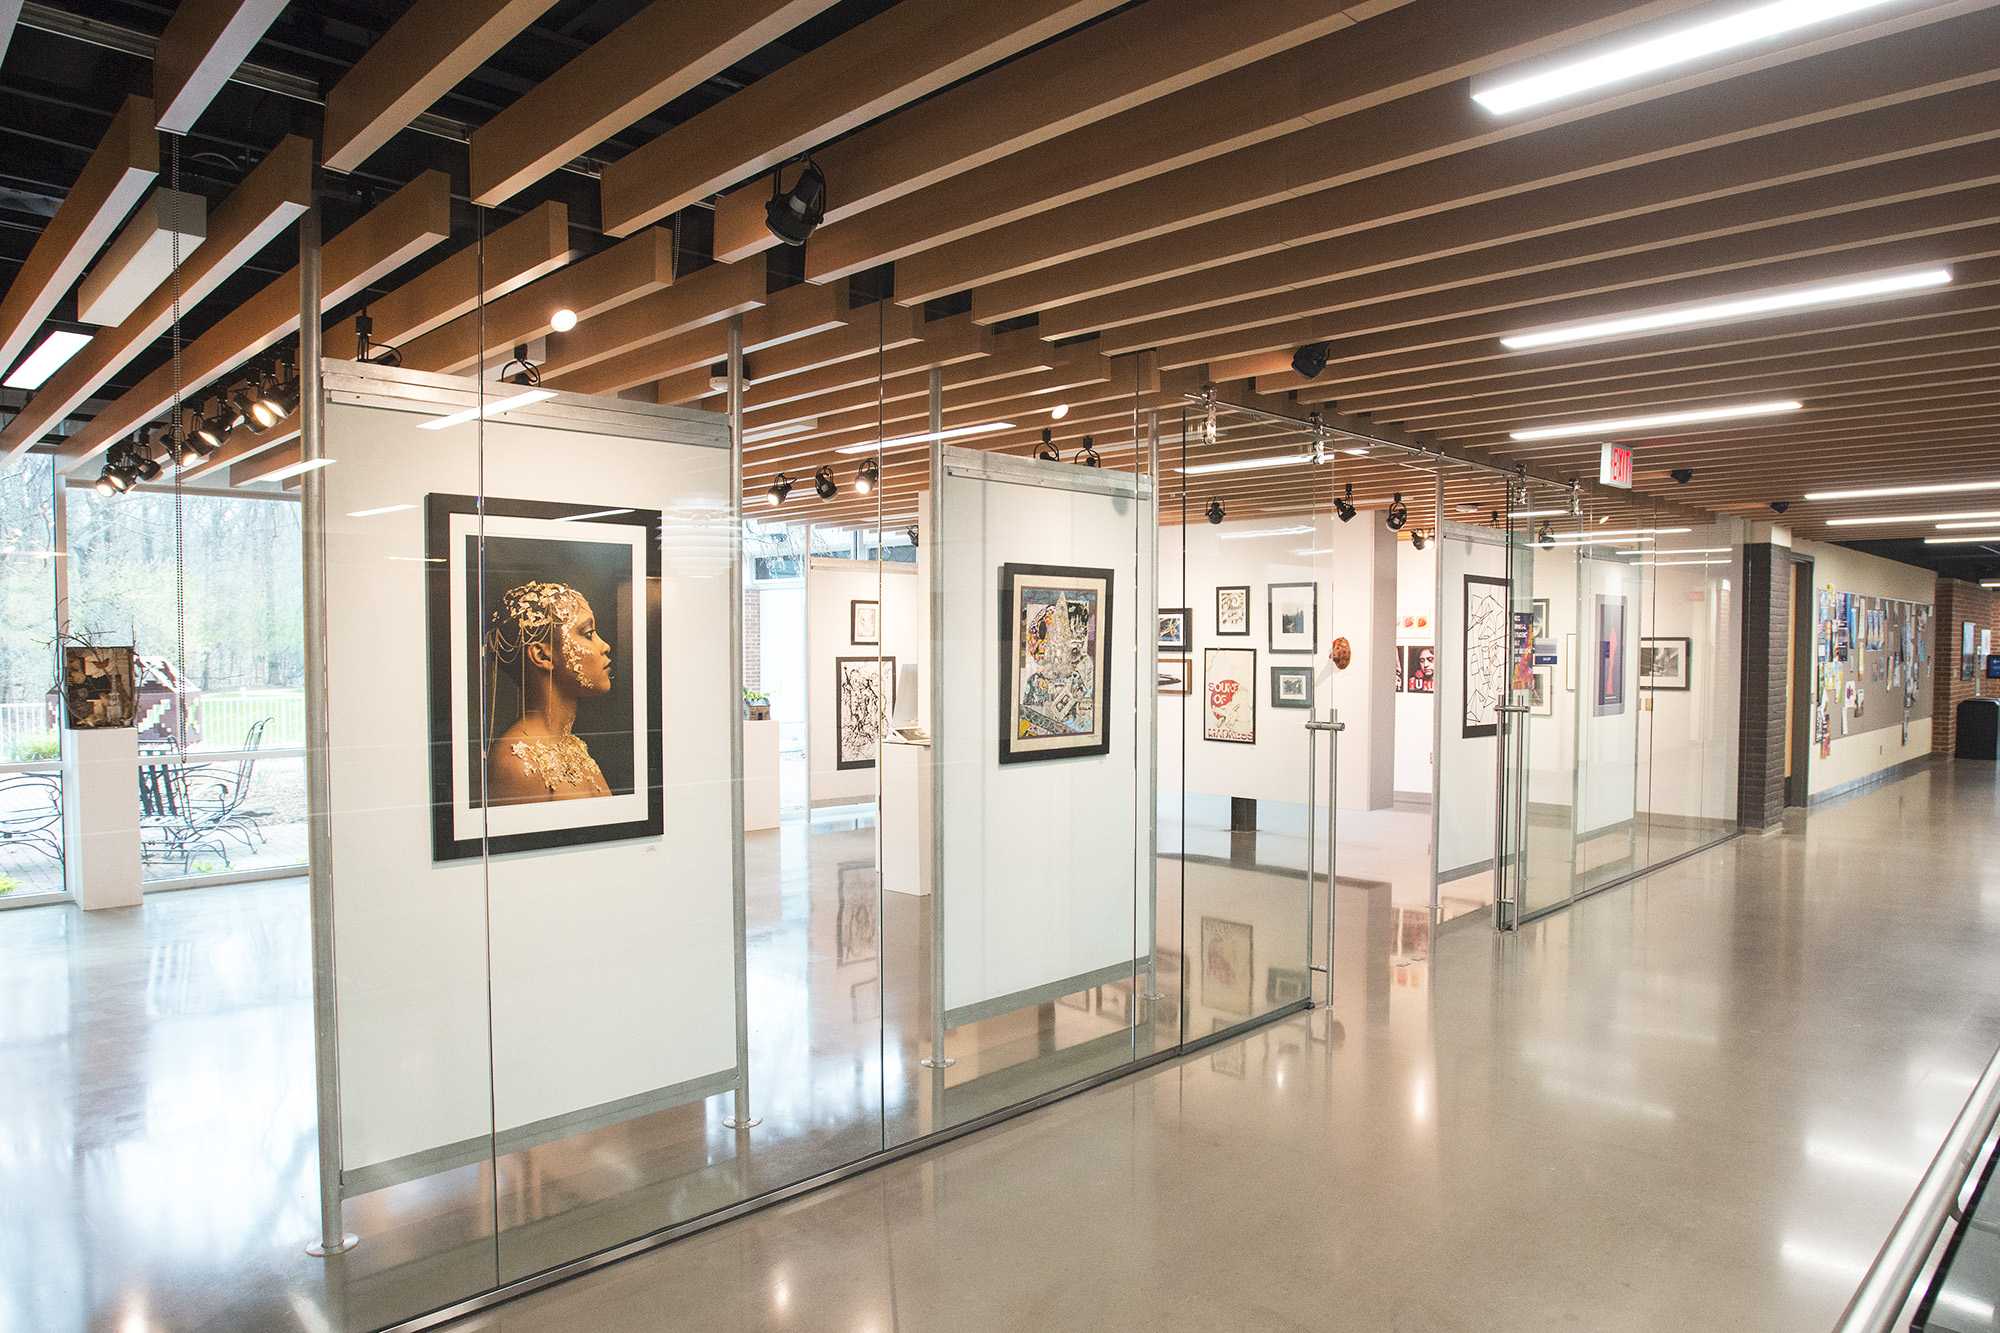 KCC's 2019 Annual Student Art Exhibition on display in the College's DeVries Gallery.